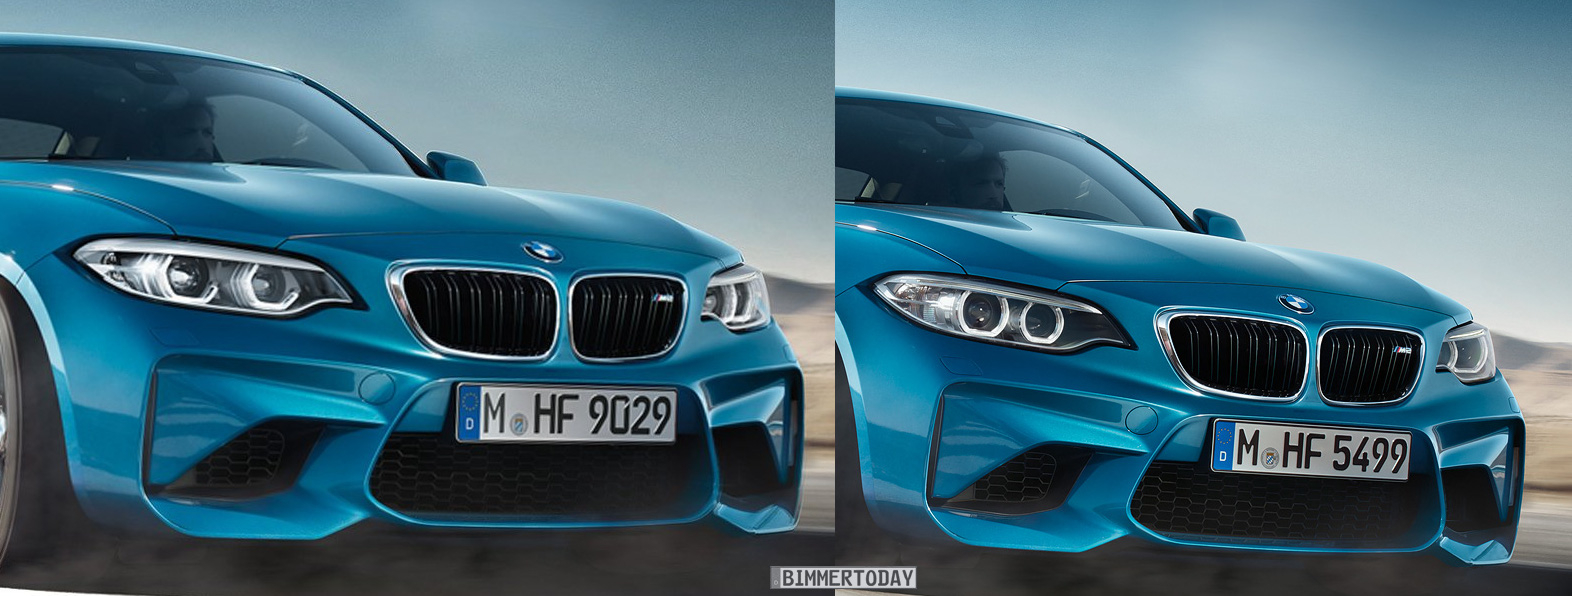 BMW-M2-Facelift-Leak-04.jpg